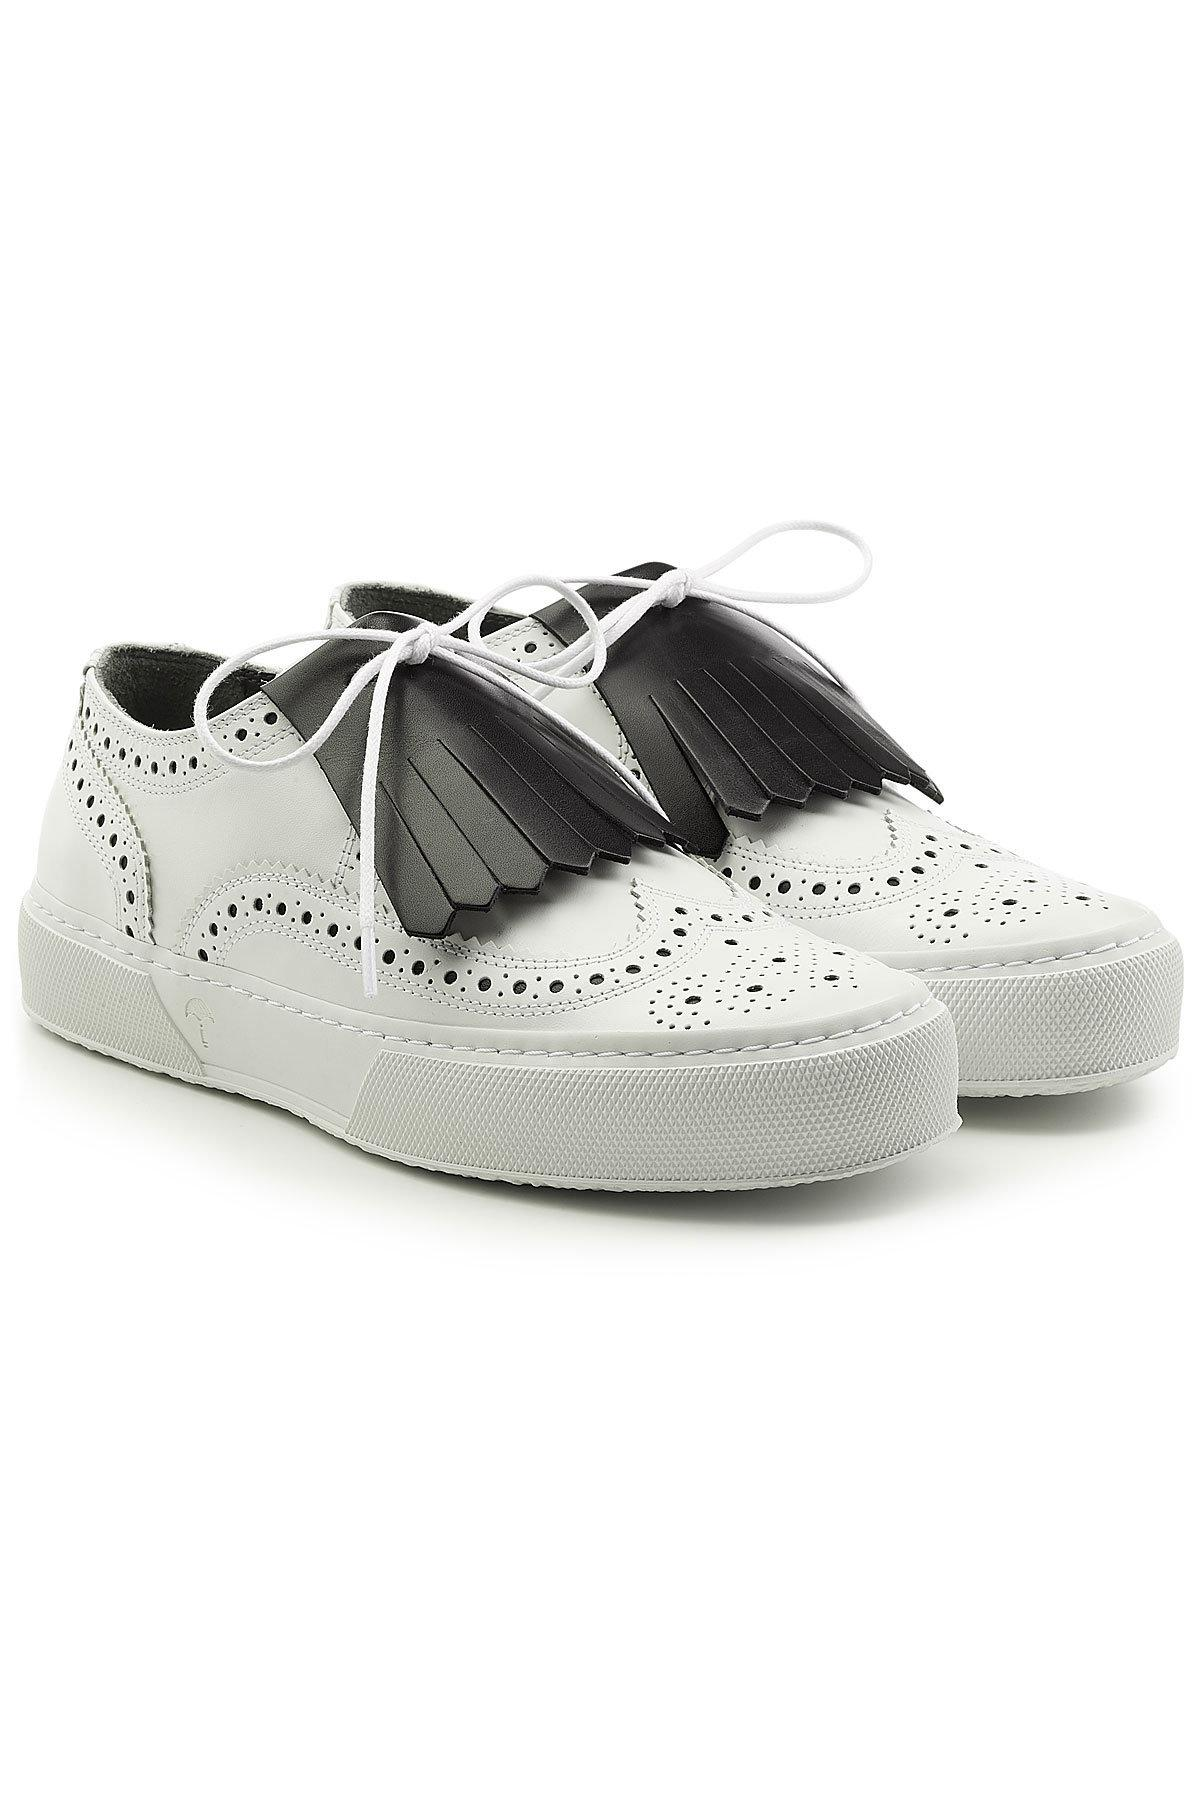 Robert Clergerie Perforated Wedge Sneakers for sale buy authentic online amazing price sale online discount sast nicekicks cheap price clearance low price CvmV2t